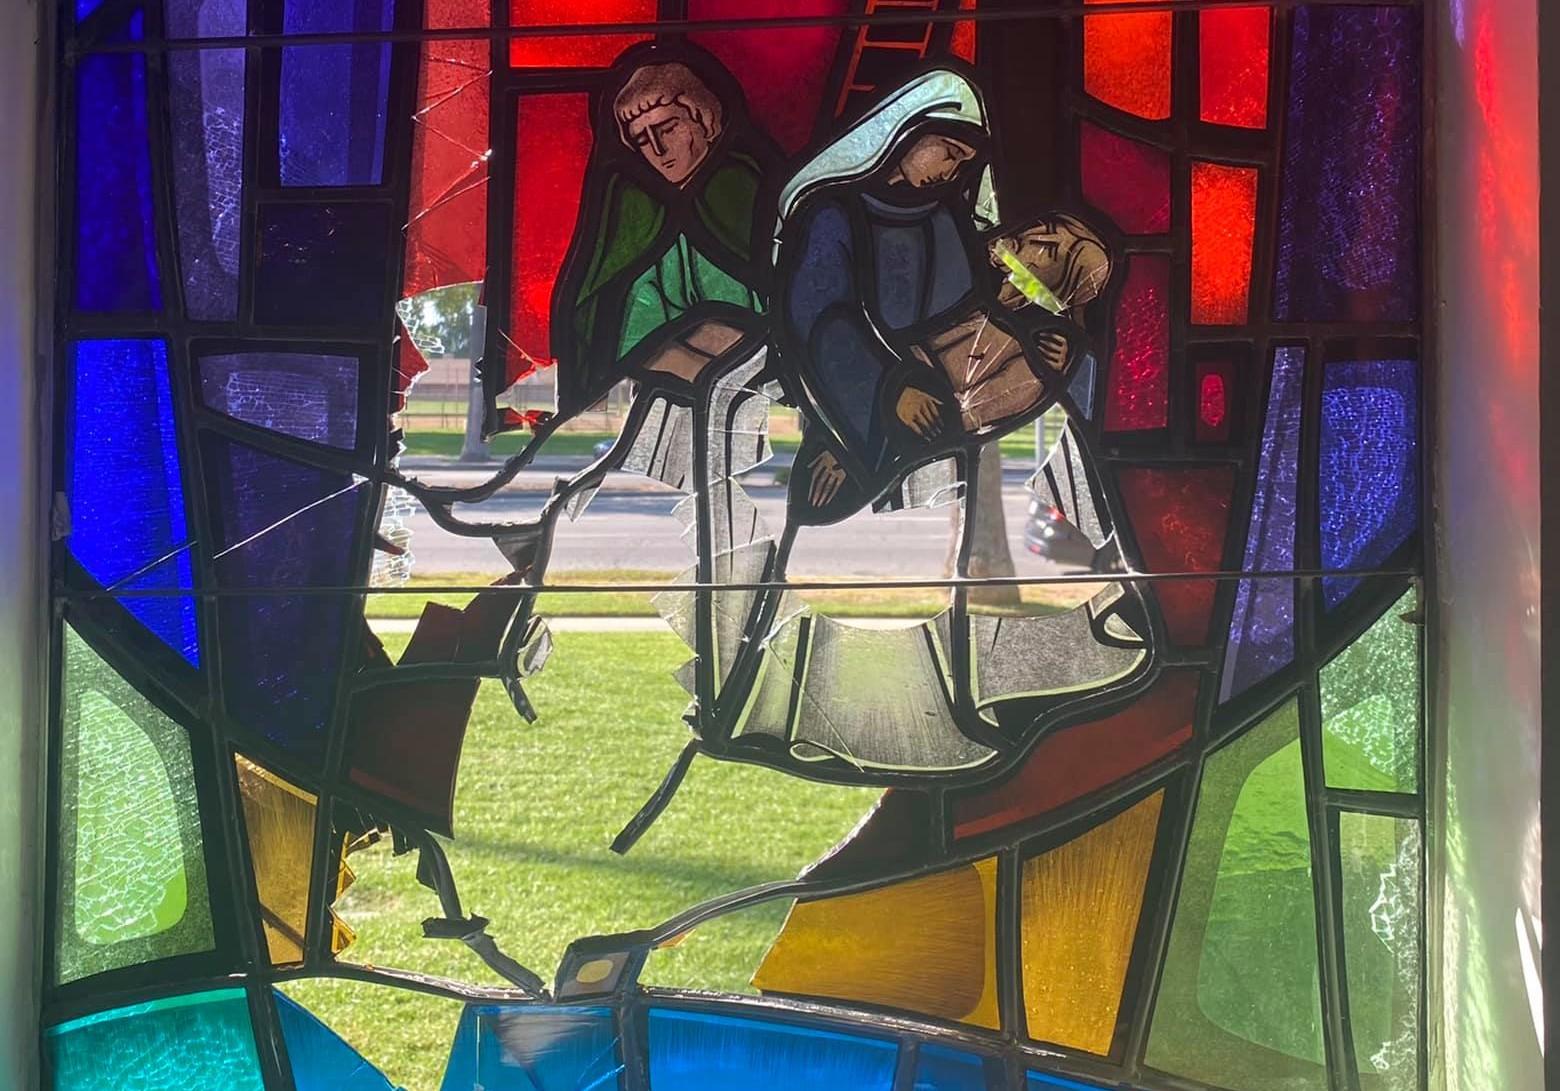 Eight stained glass windows at St. Peter Armenian Apostolic Church were damaged on Sept. 22, 2021. (St. Peter Armenian Apostolic Church)